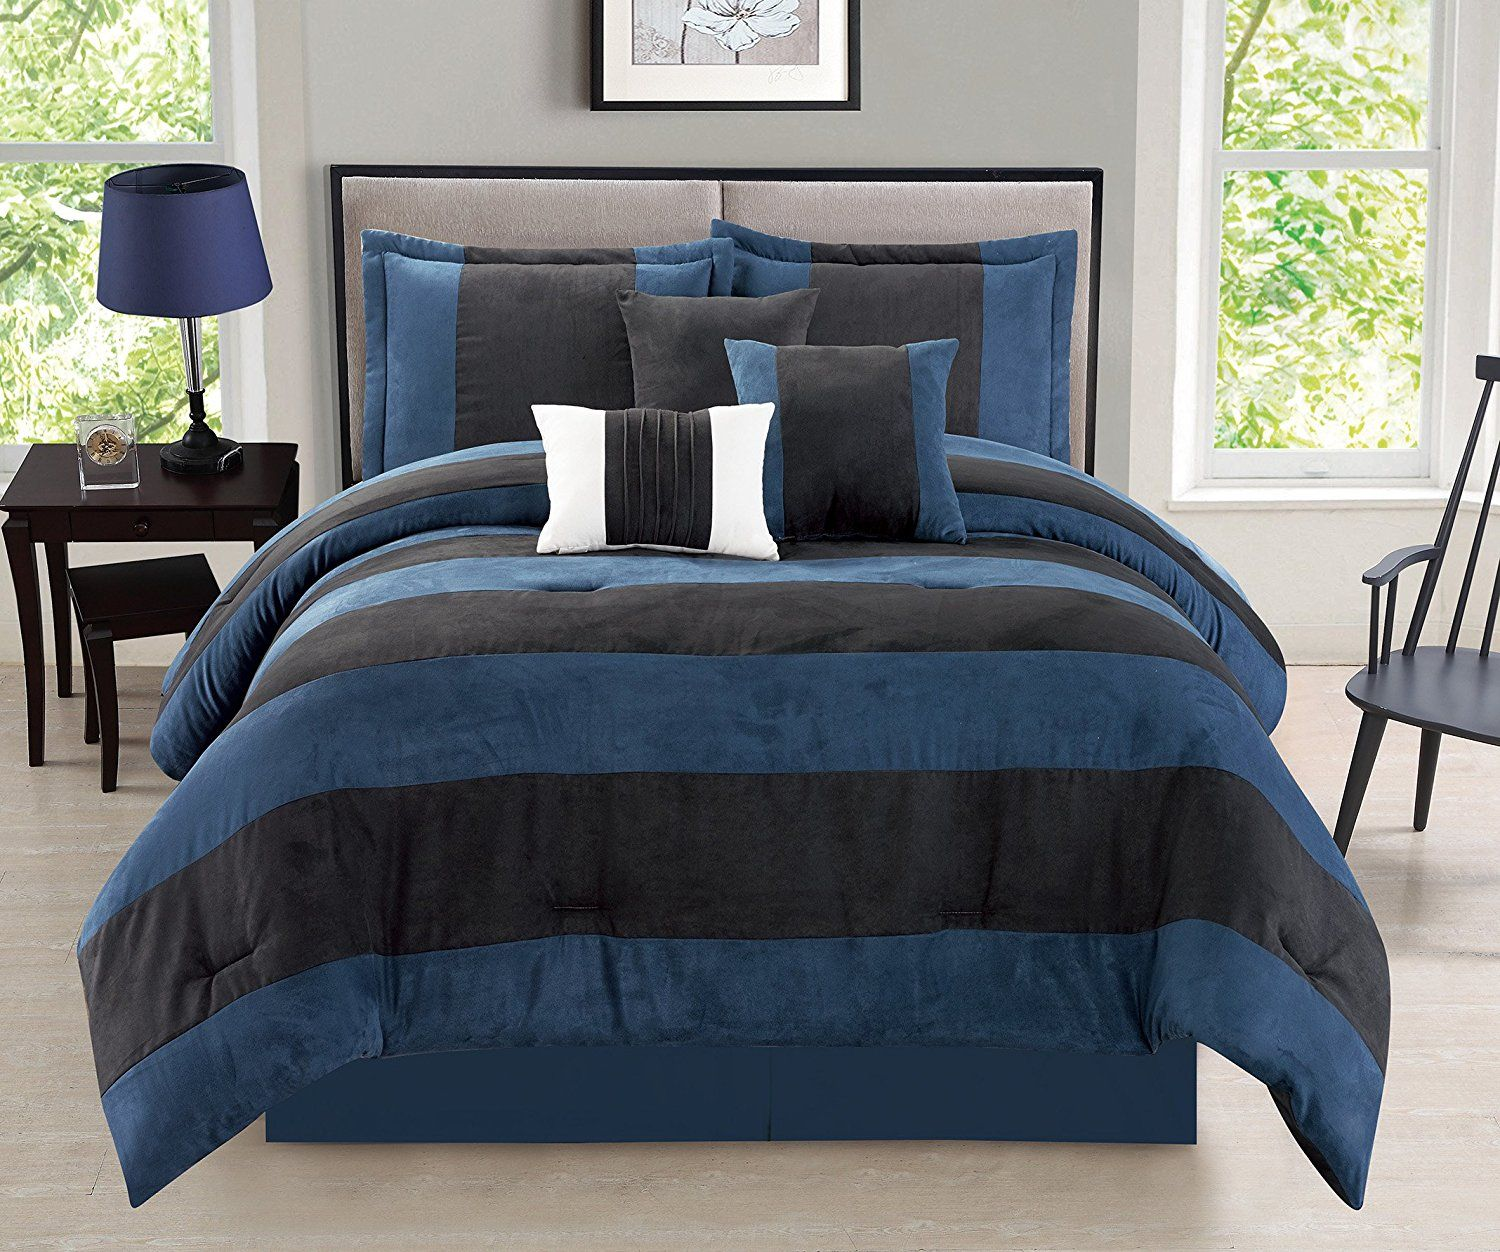 Bamboo Comforters with More (With images) Comforter sets